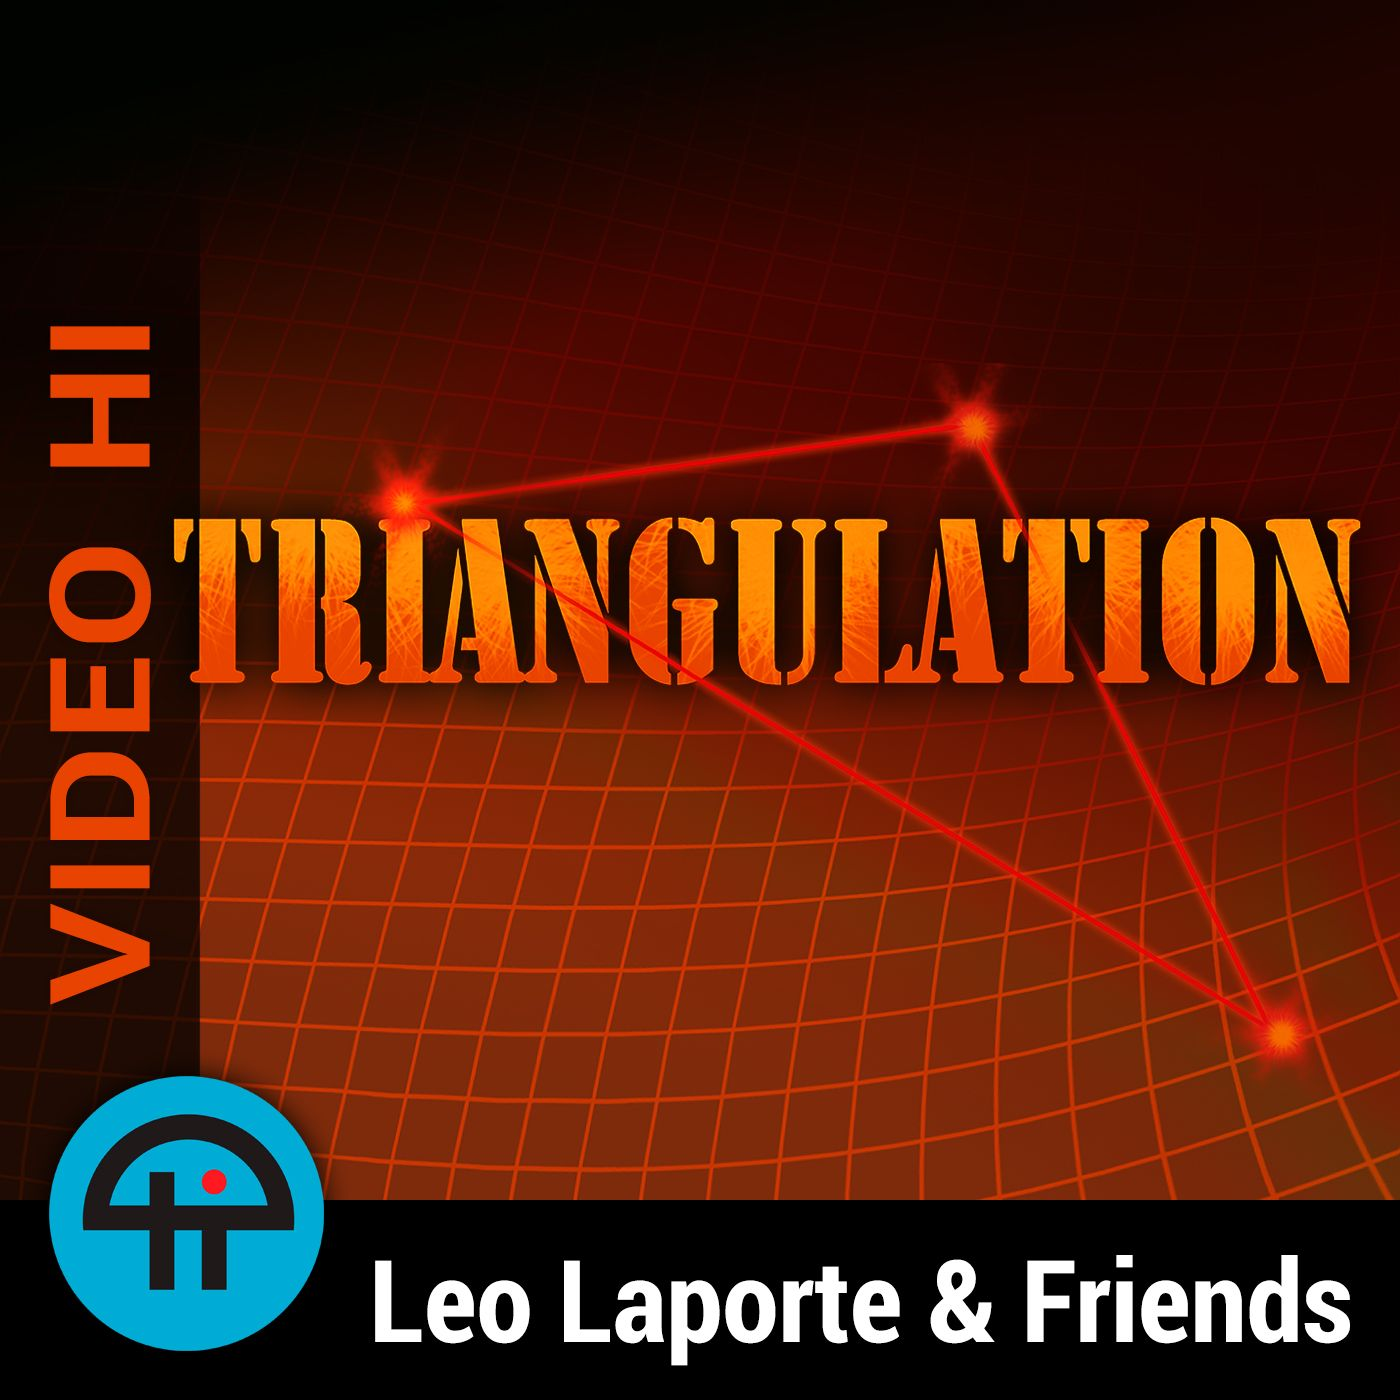 Triangulation (Video-HI)